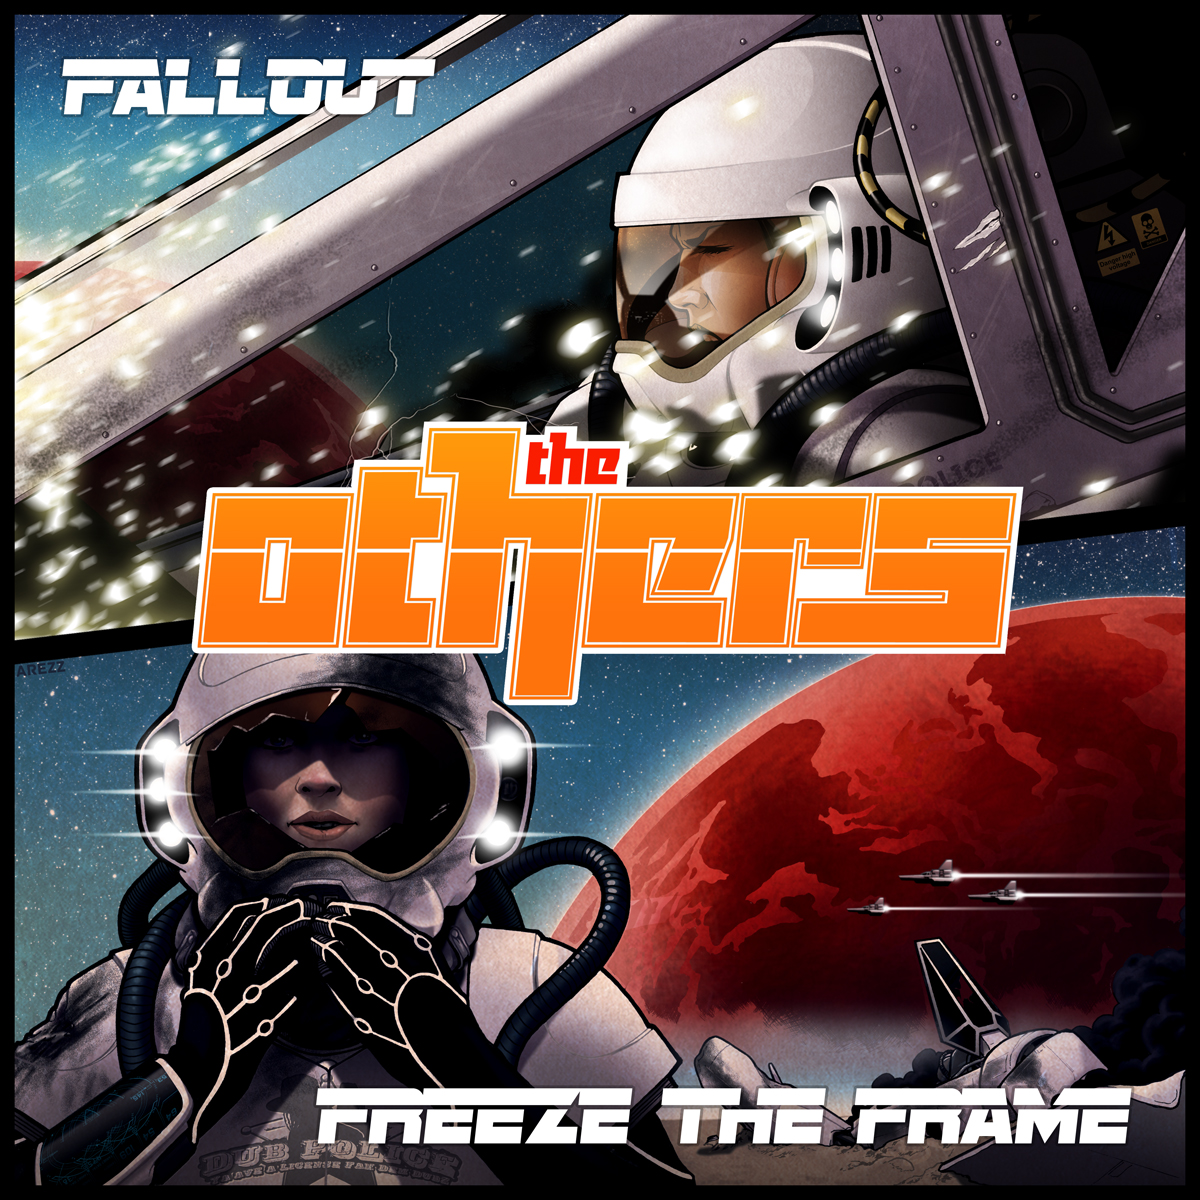 DP074: FALLOUT / FREEZE THE FRAME